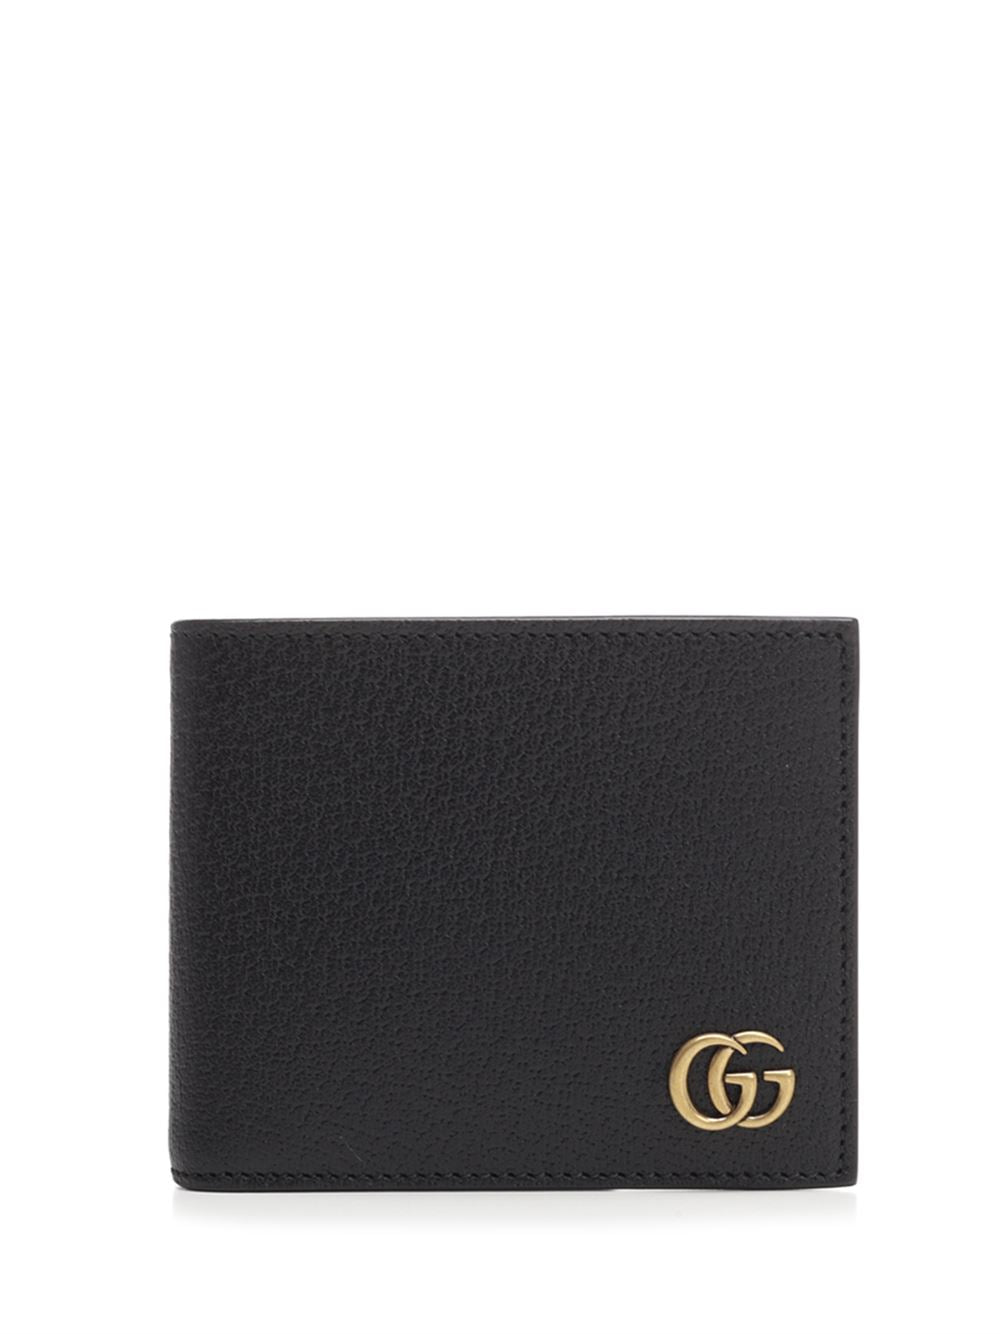 2a3f1c65d5f8 Gucci Gg Marmont Wallet In Black | ModeSens